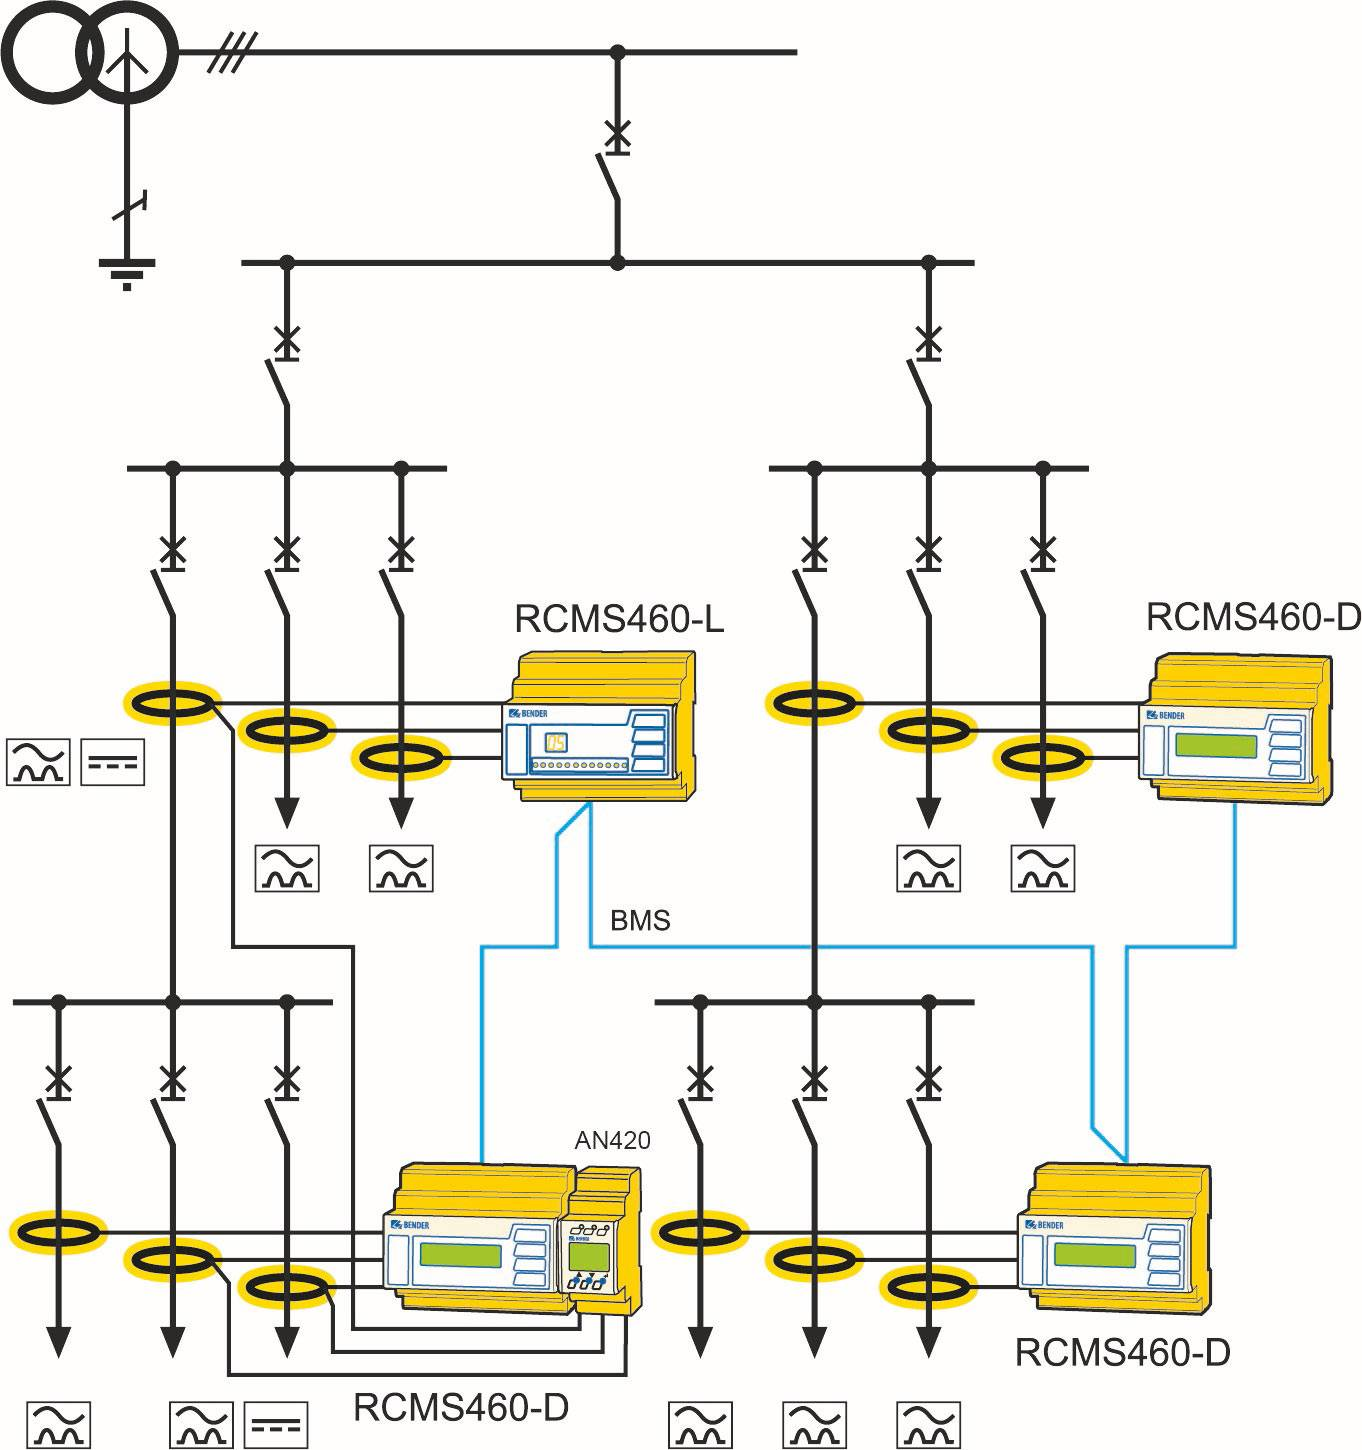 Schematic diagram for power supply monitoring for up to 1080  single circuits